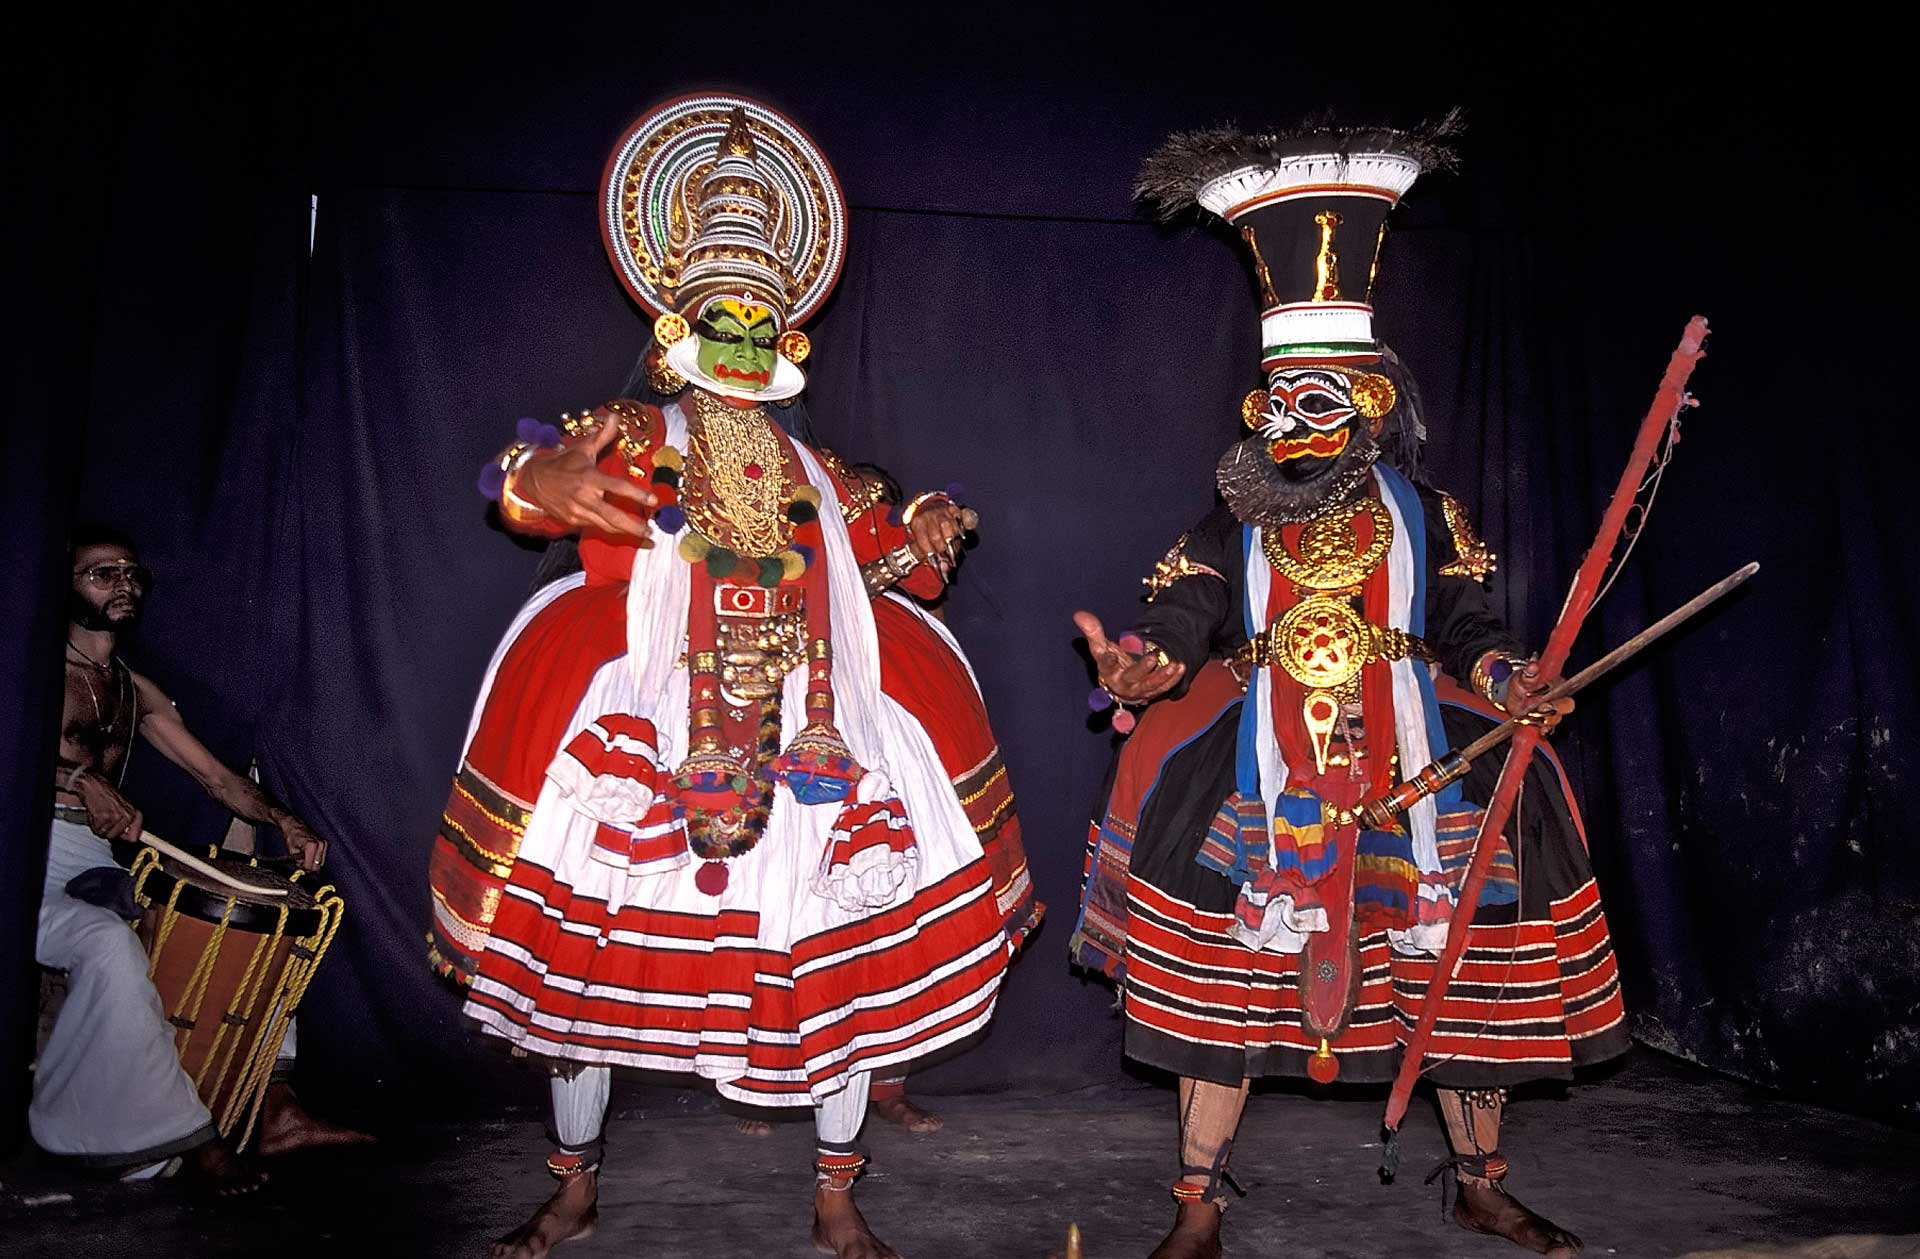 Kathakali classical dance-drama dancers and musician, Kochi, Kerala, India